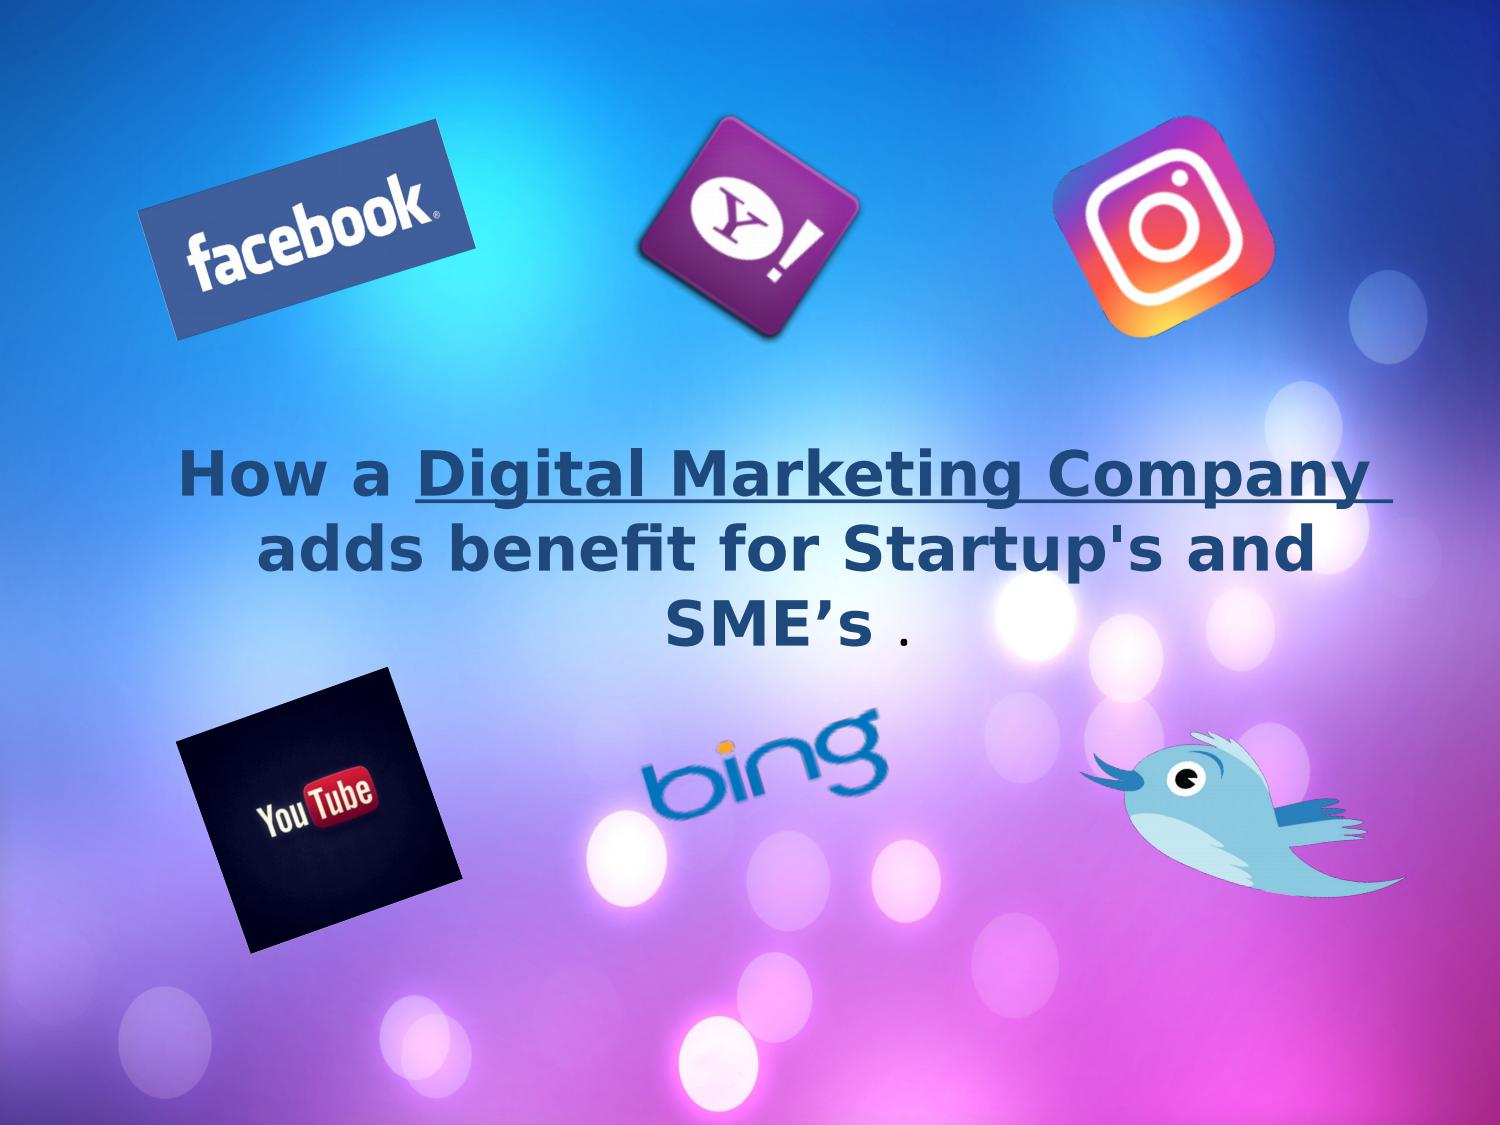 Digital marketing ppt by adhithyag007official - issuu